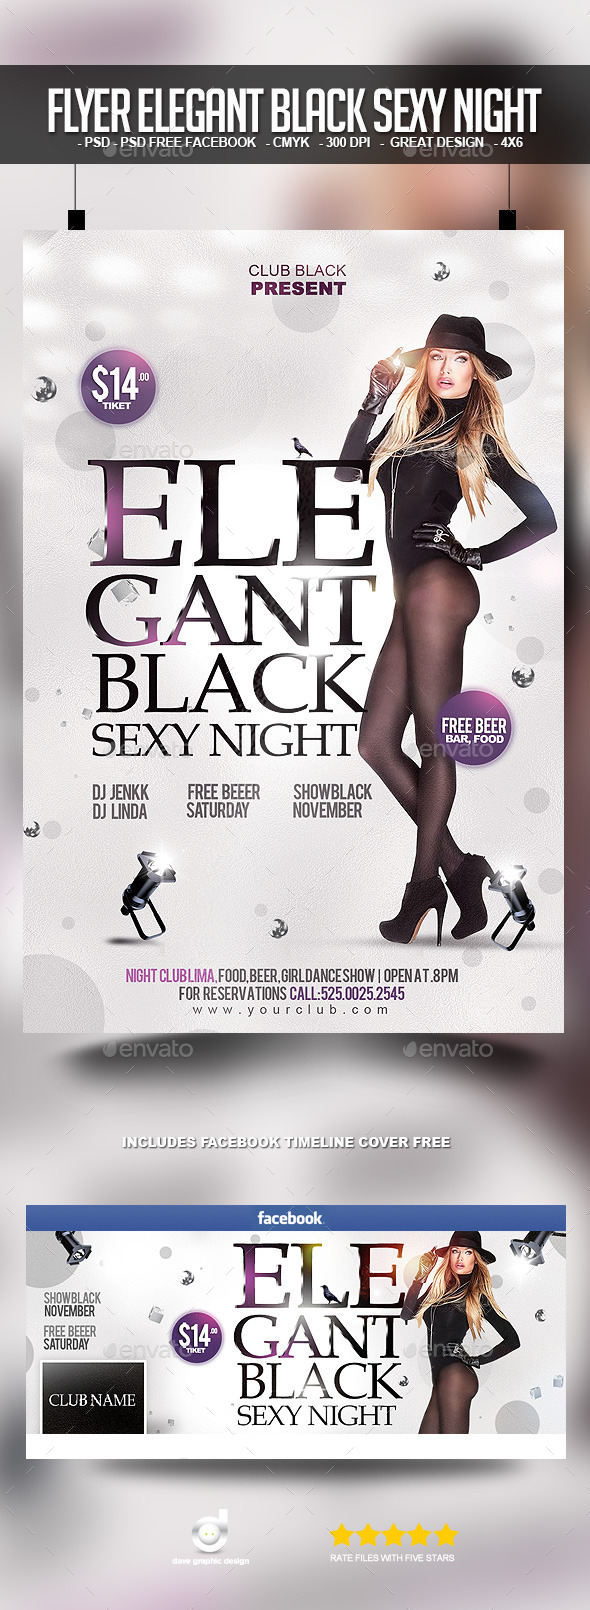 Flyer Elegant Black Sexy Night - Clubs & Parties Events